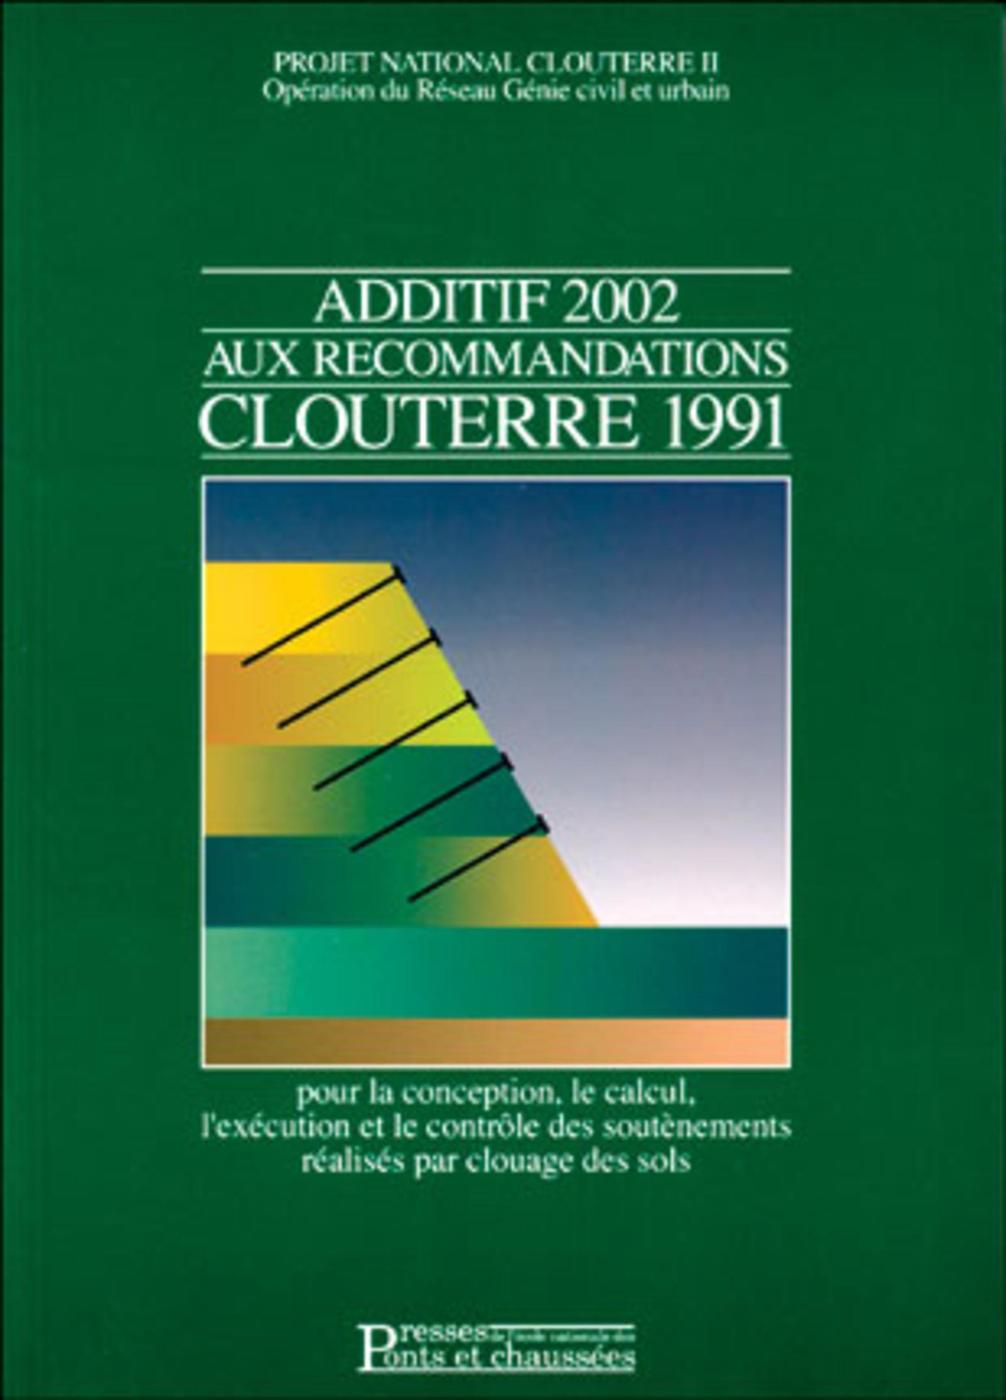 Additif 2002 Aux Recommandations Clouterre 1991 Projet National Librairie Eyrolles